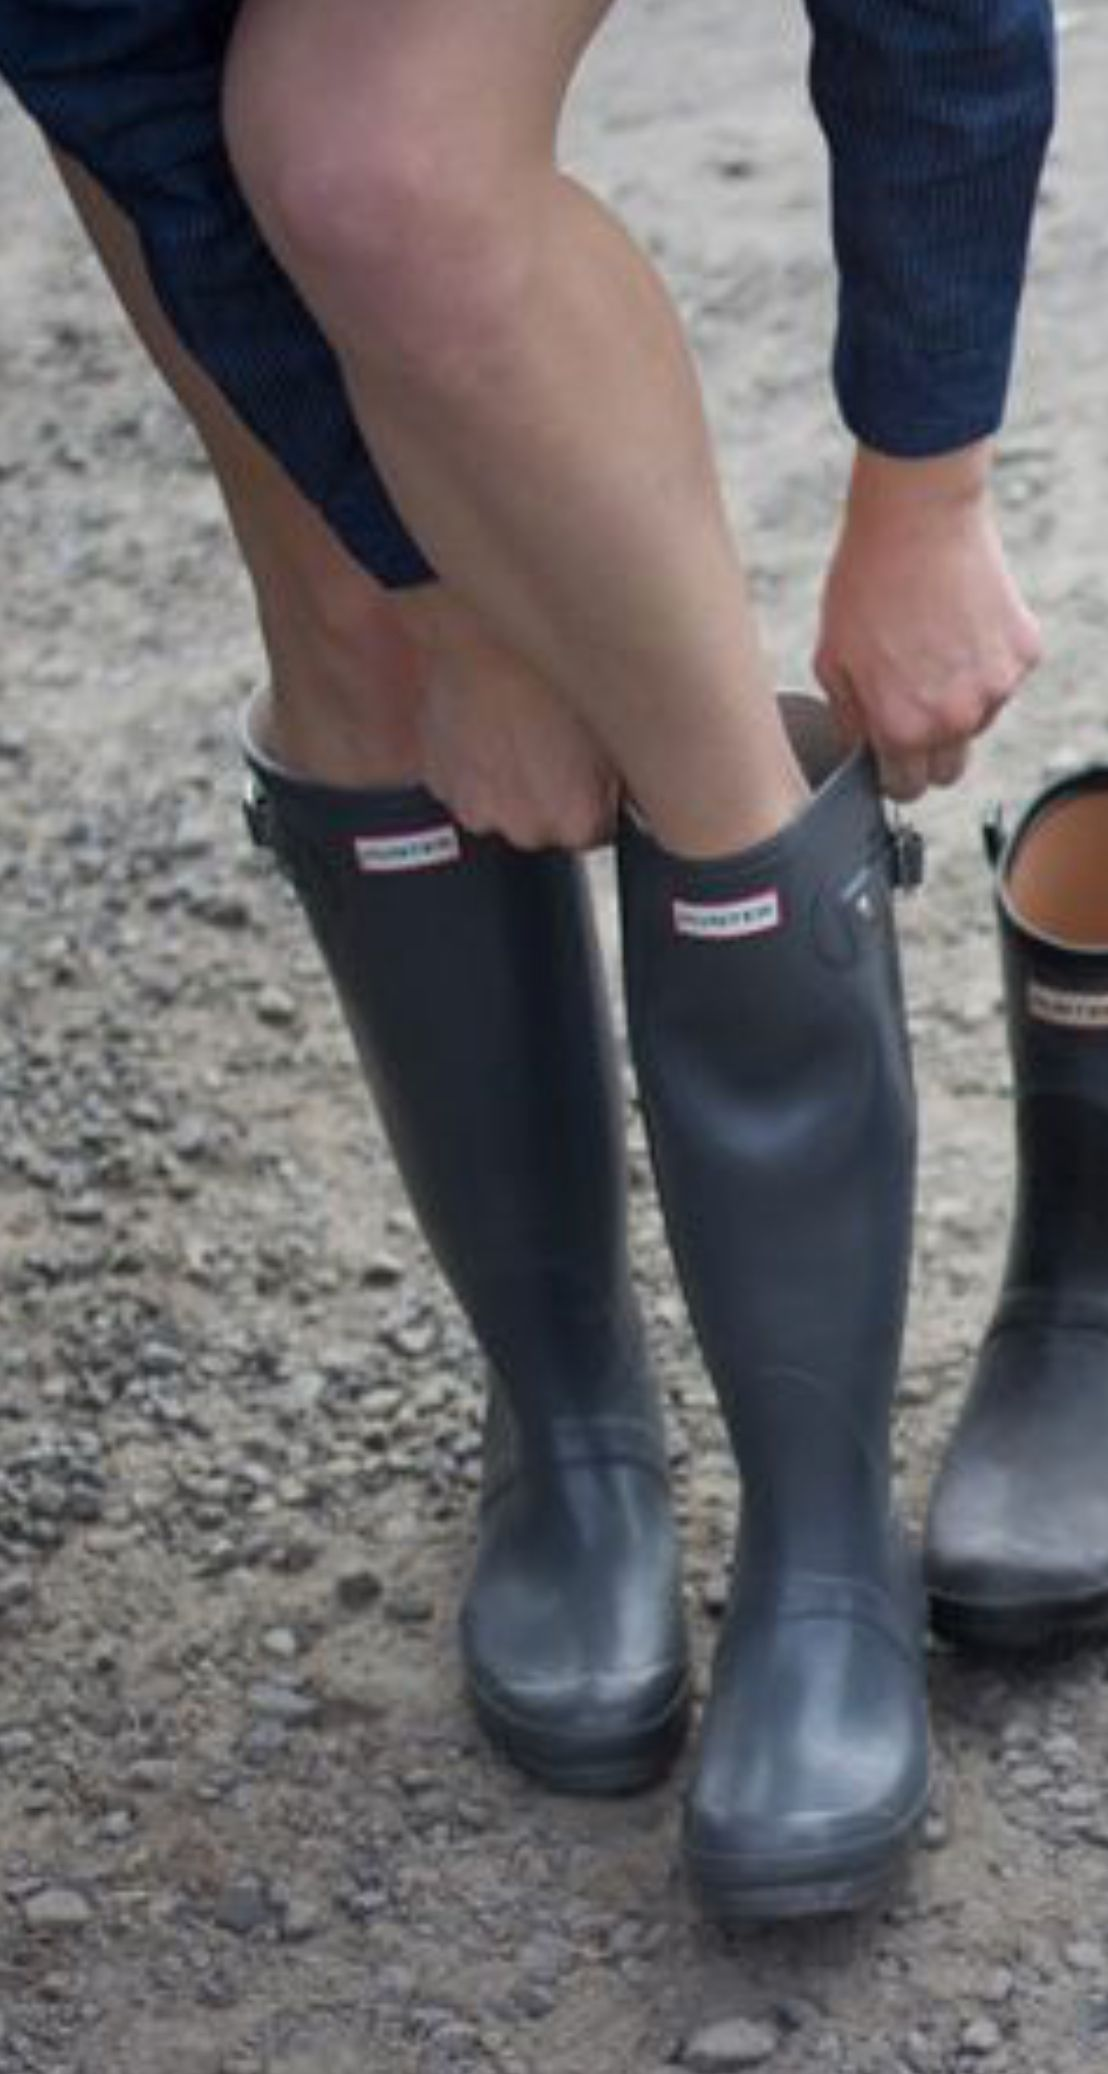 quality design 6b3e8 77ad6 Pin von Herb auf Hunter wellies | Gummistiefel, Gummistiefel ...